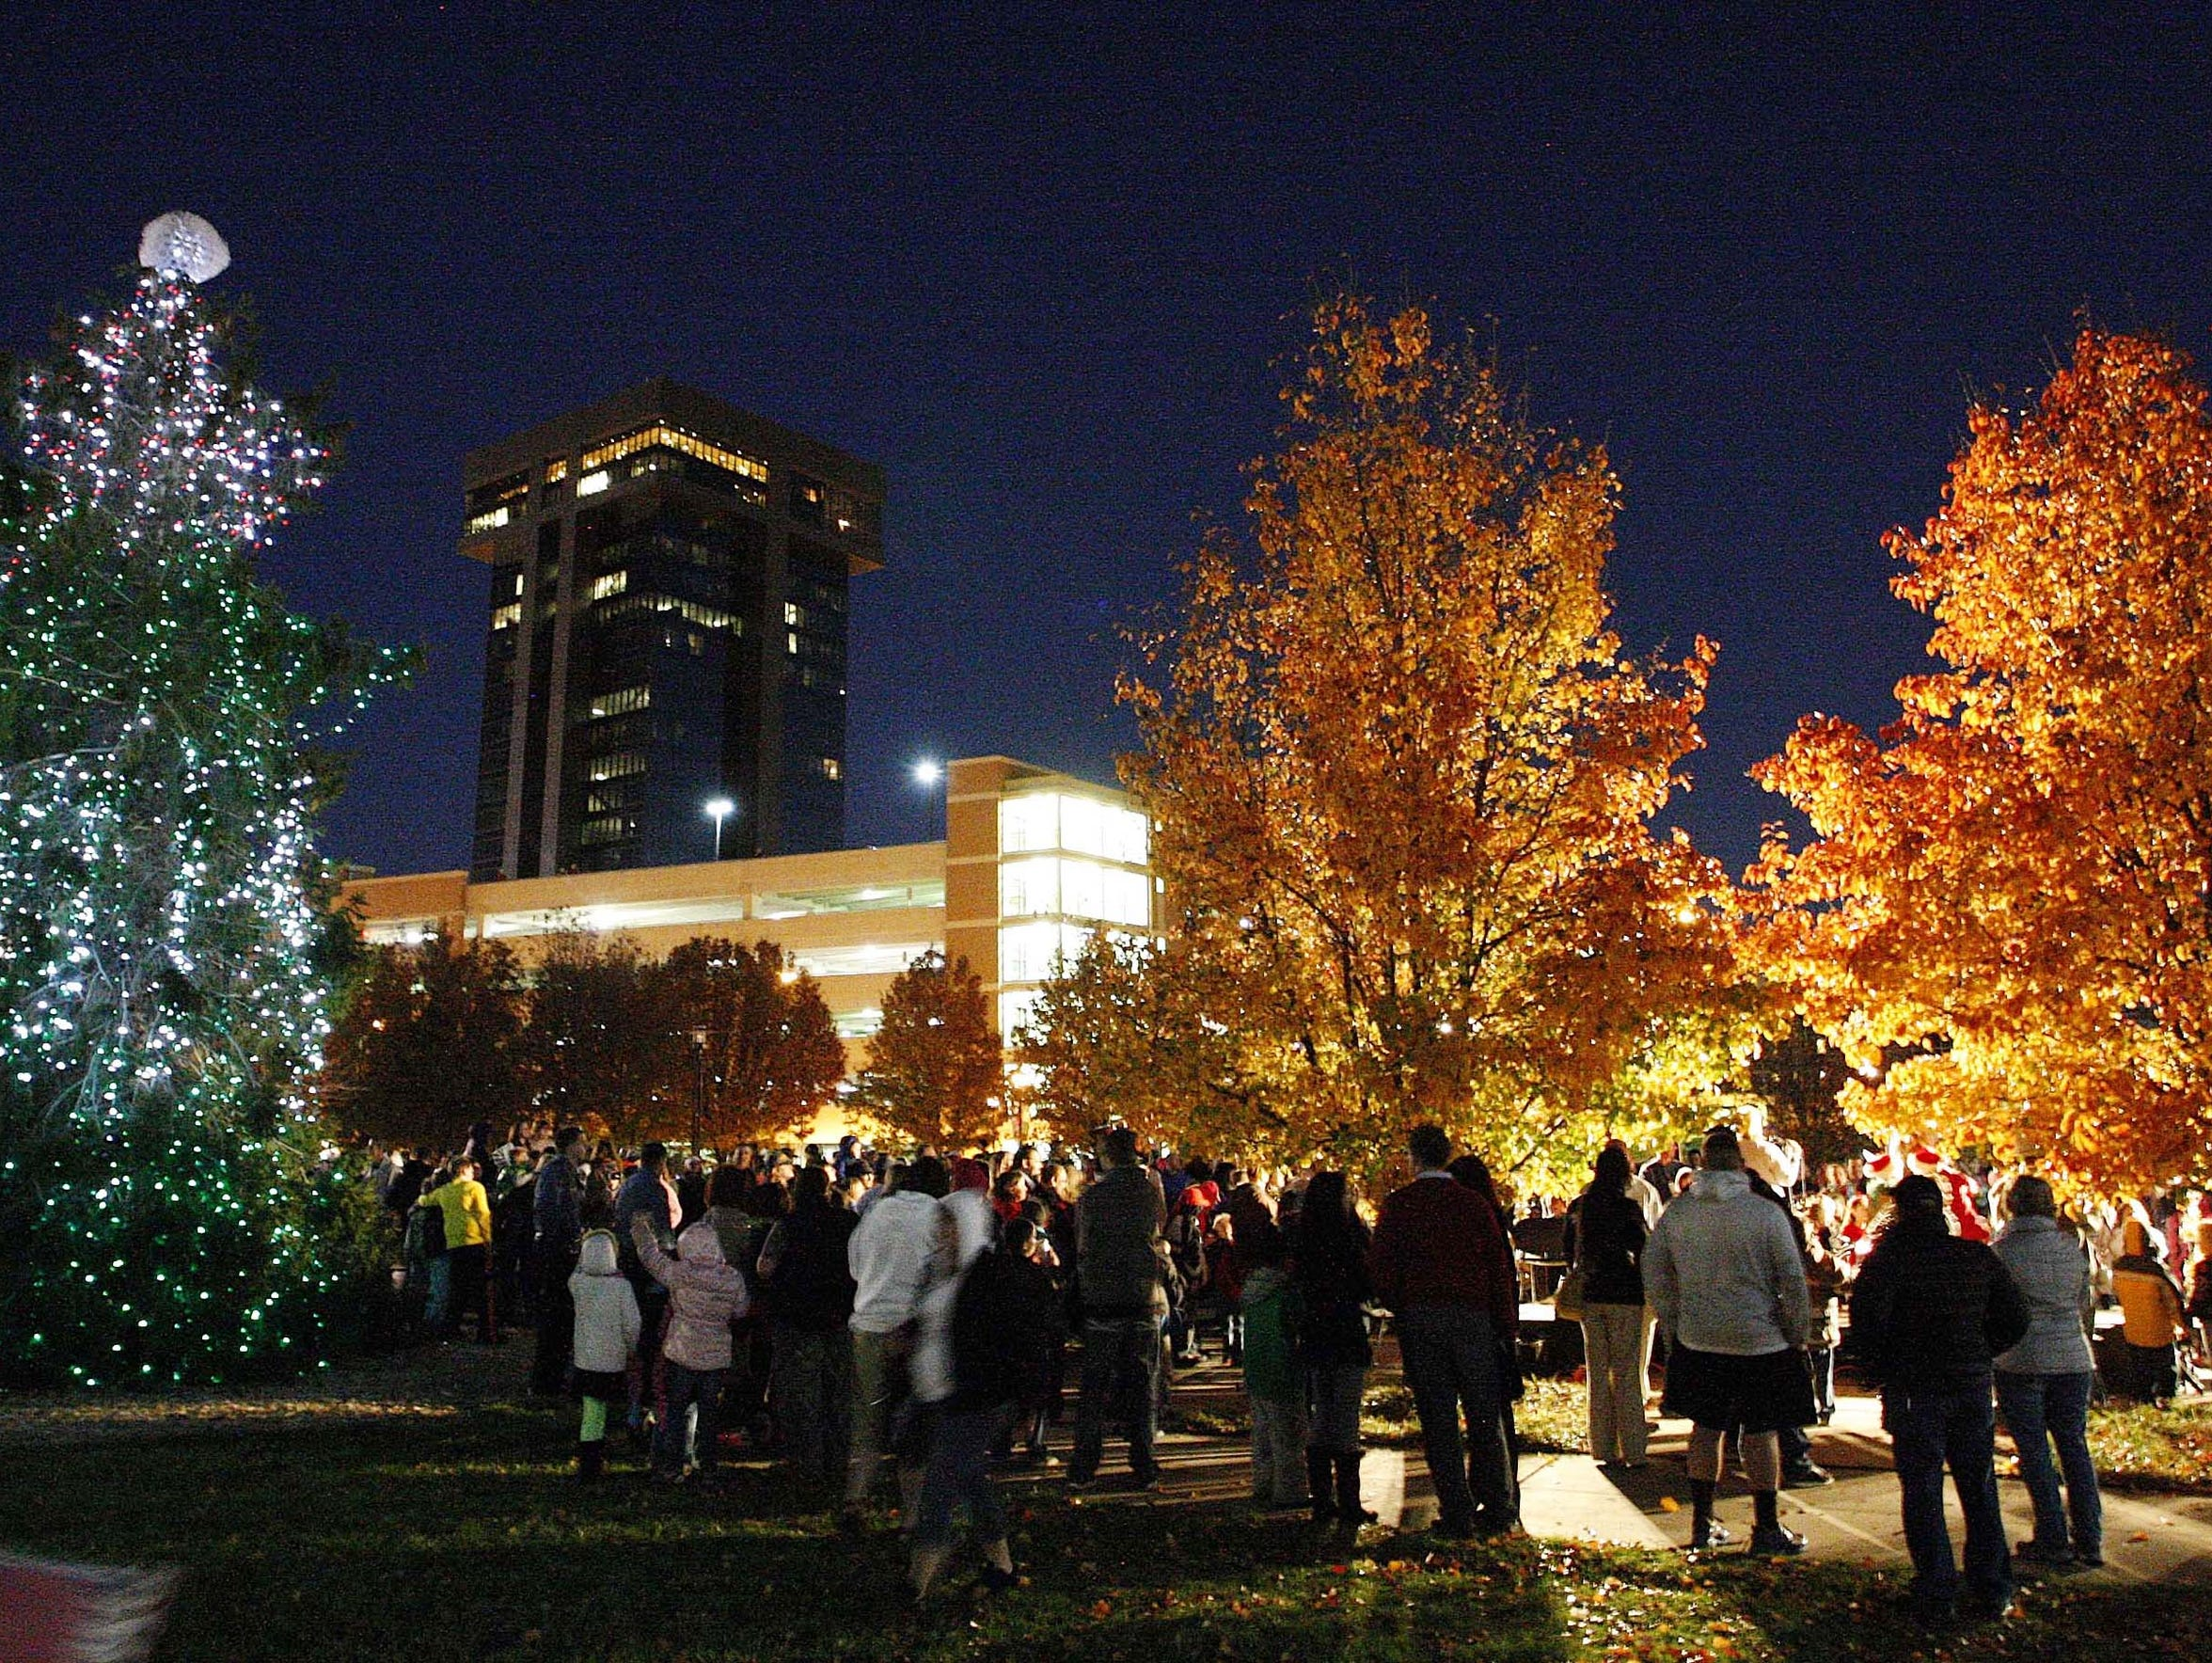 This year's Festival of Lights season kicks off with